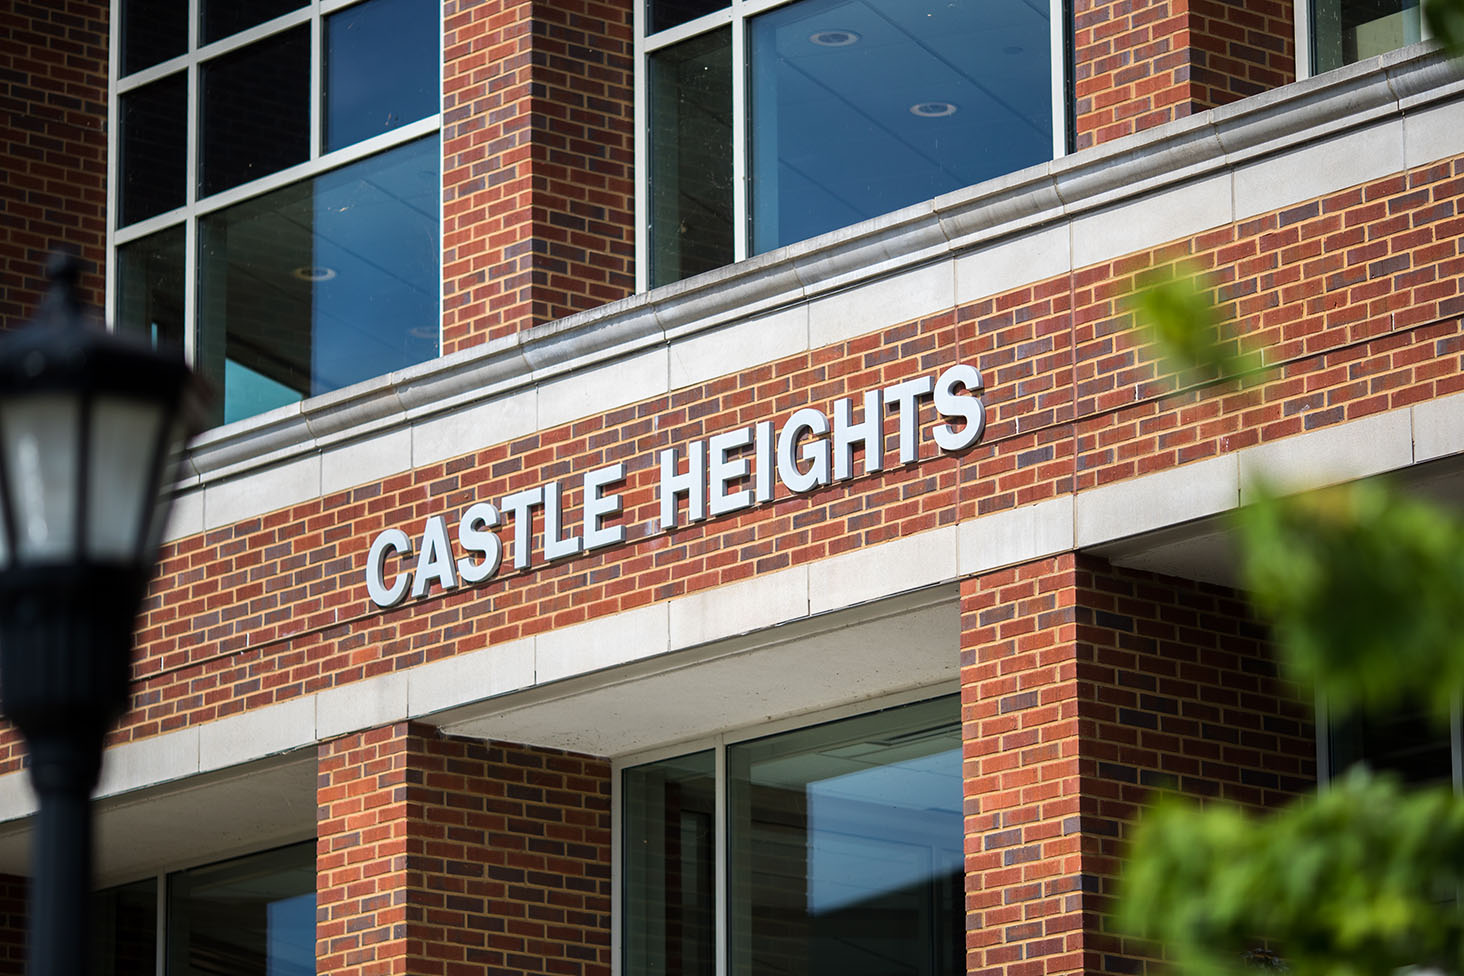 Castle Heights